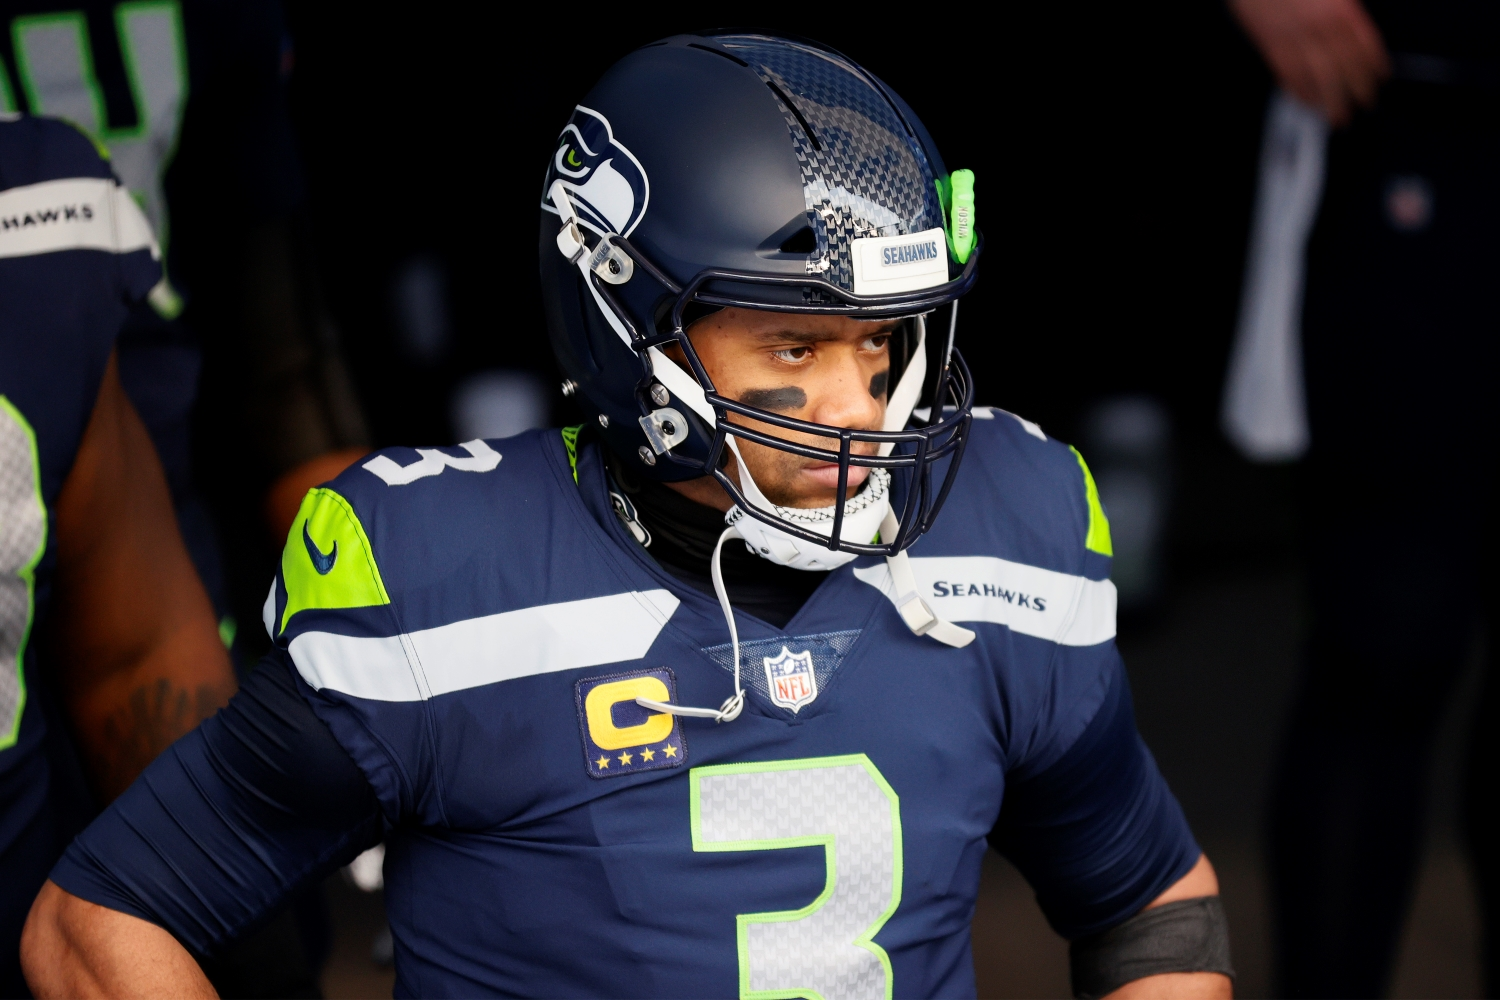 Seahawks quarterback Russell Wilson prepares to take the field.